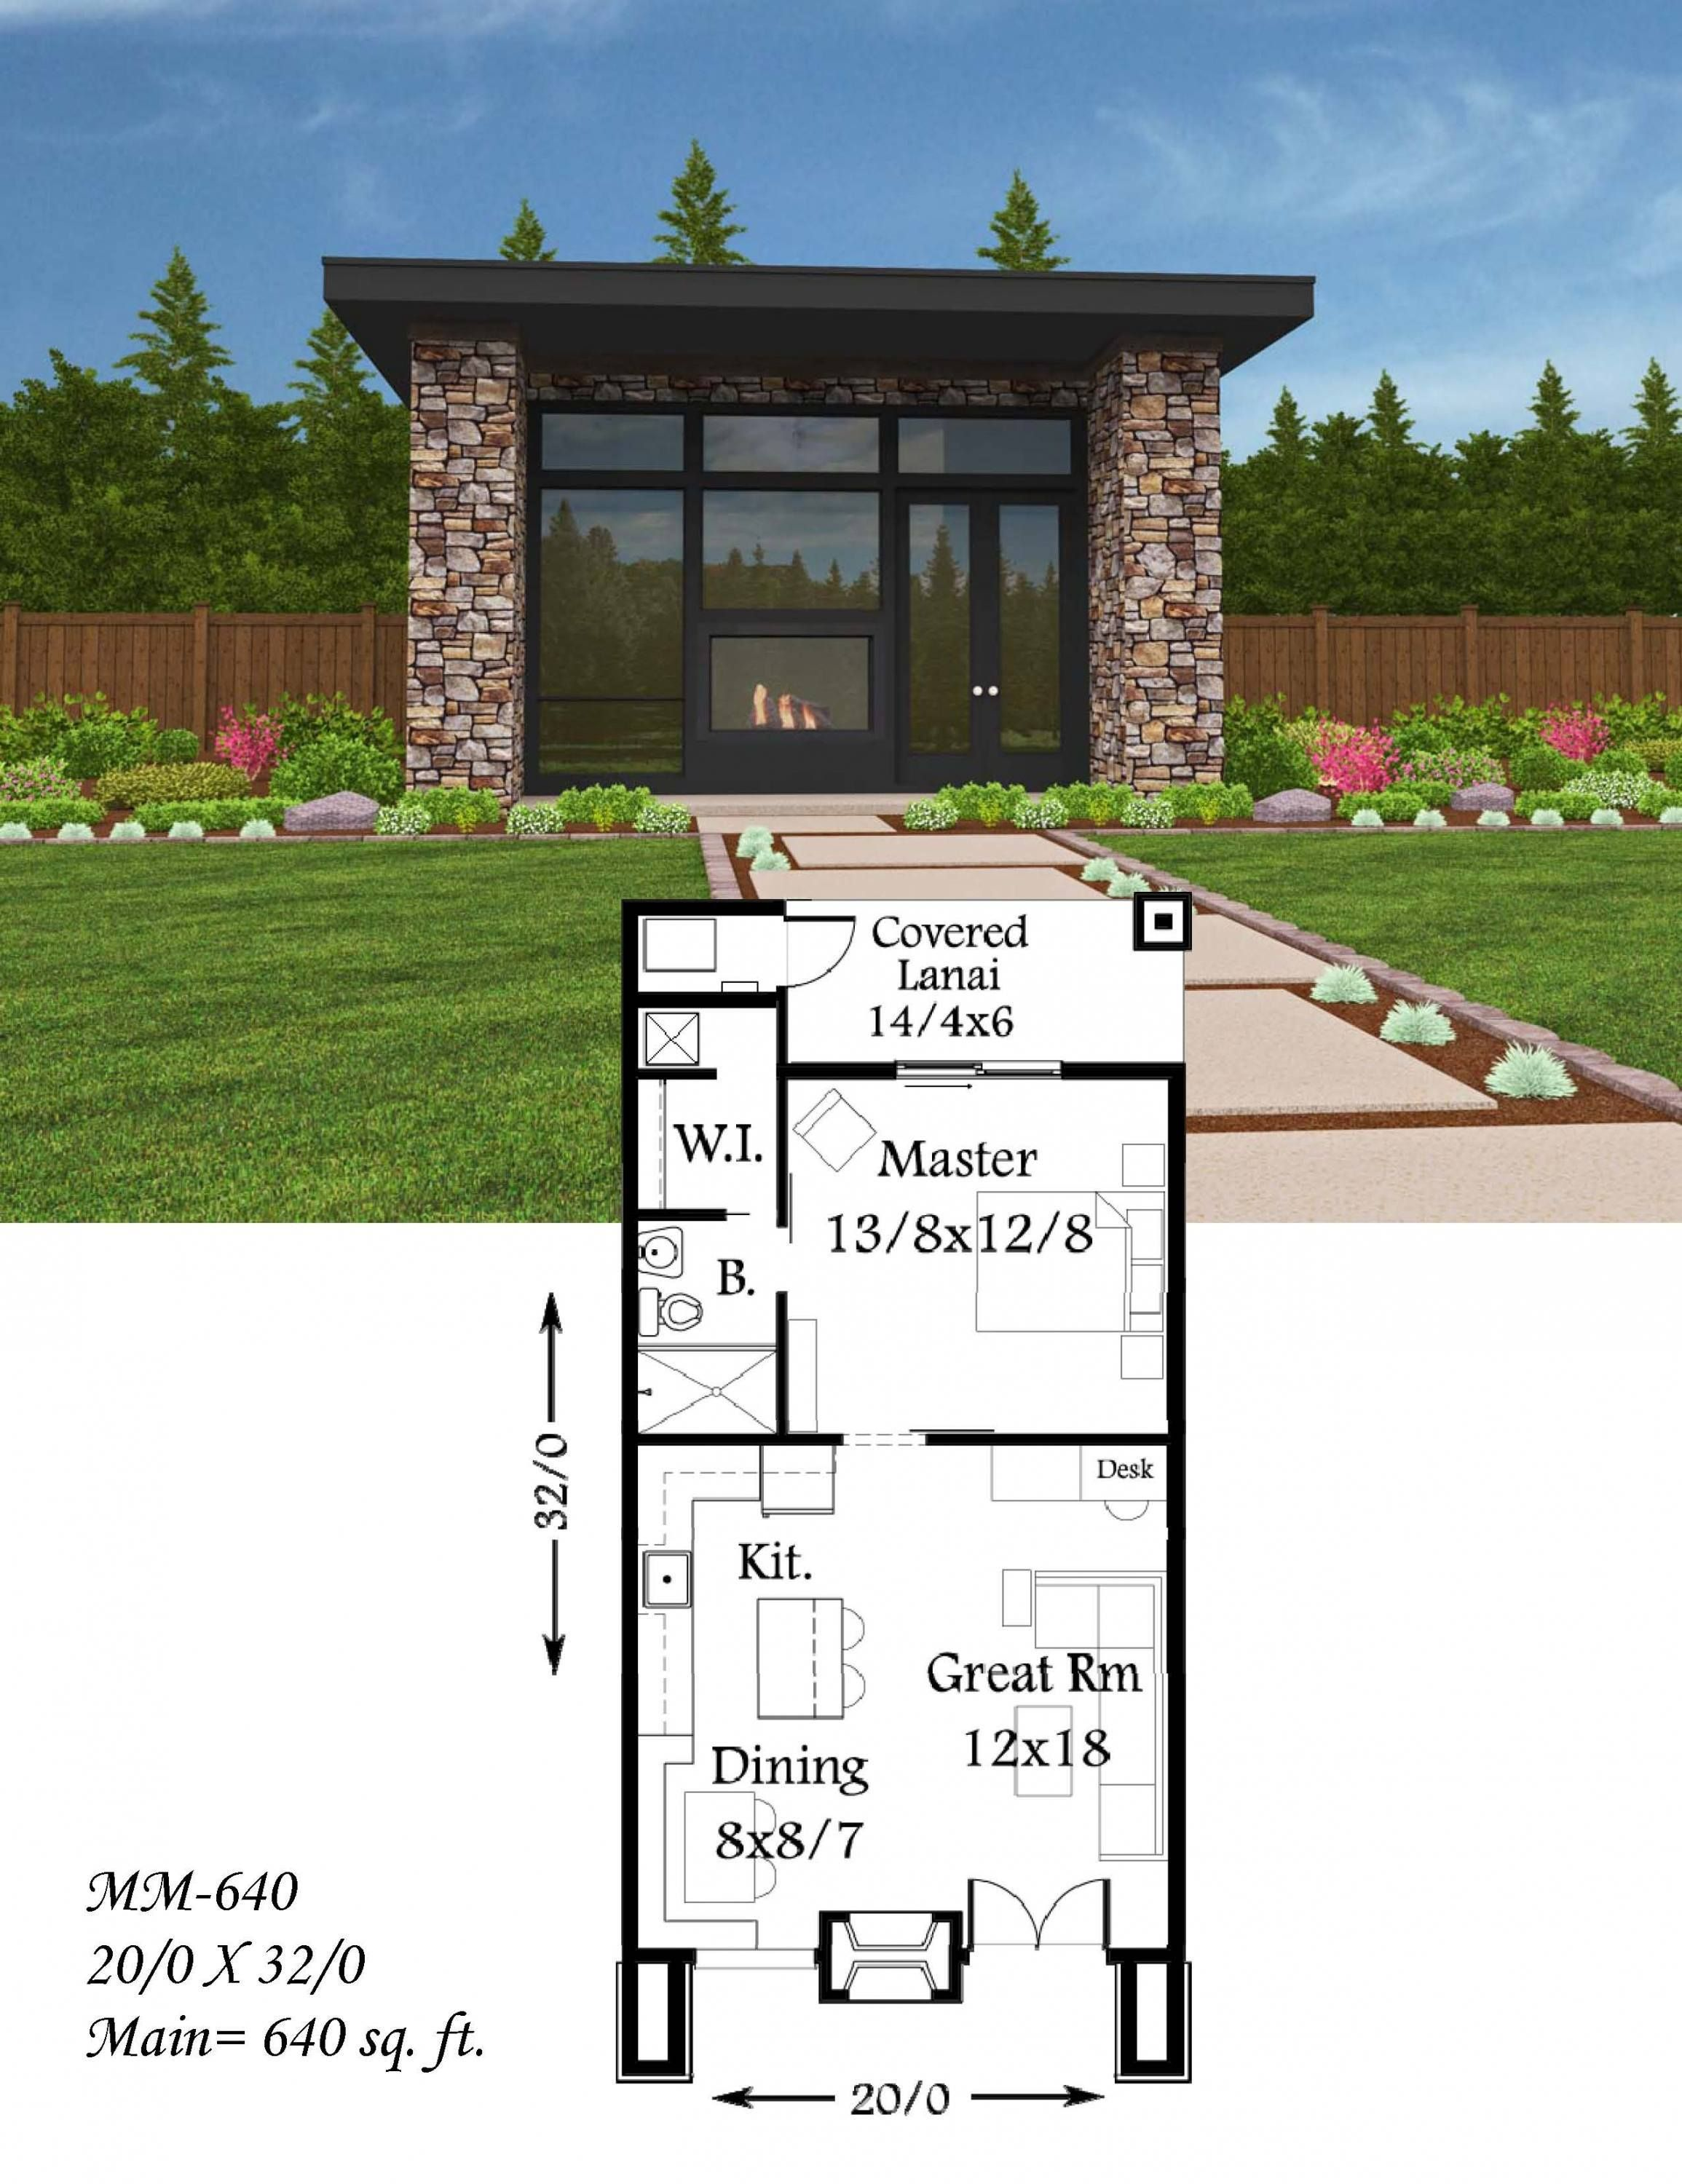 simplicity and beauty wrapped up with everything you need on best tiny house plan design ideas id=31504